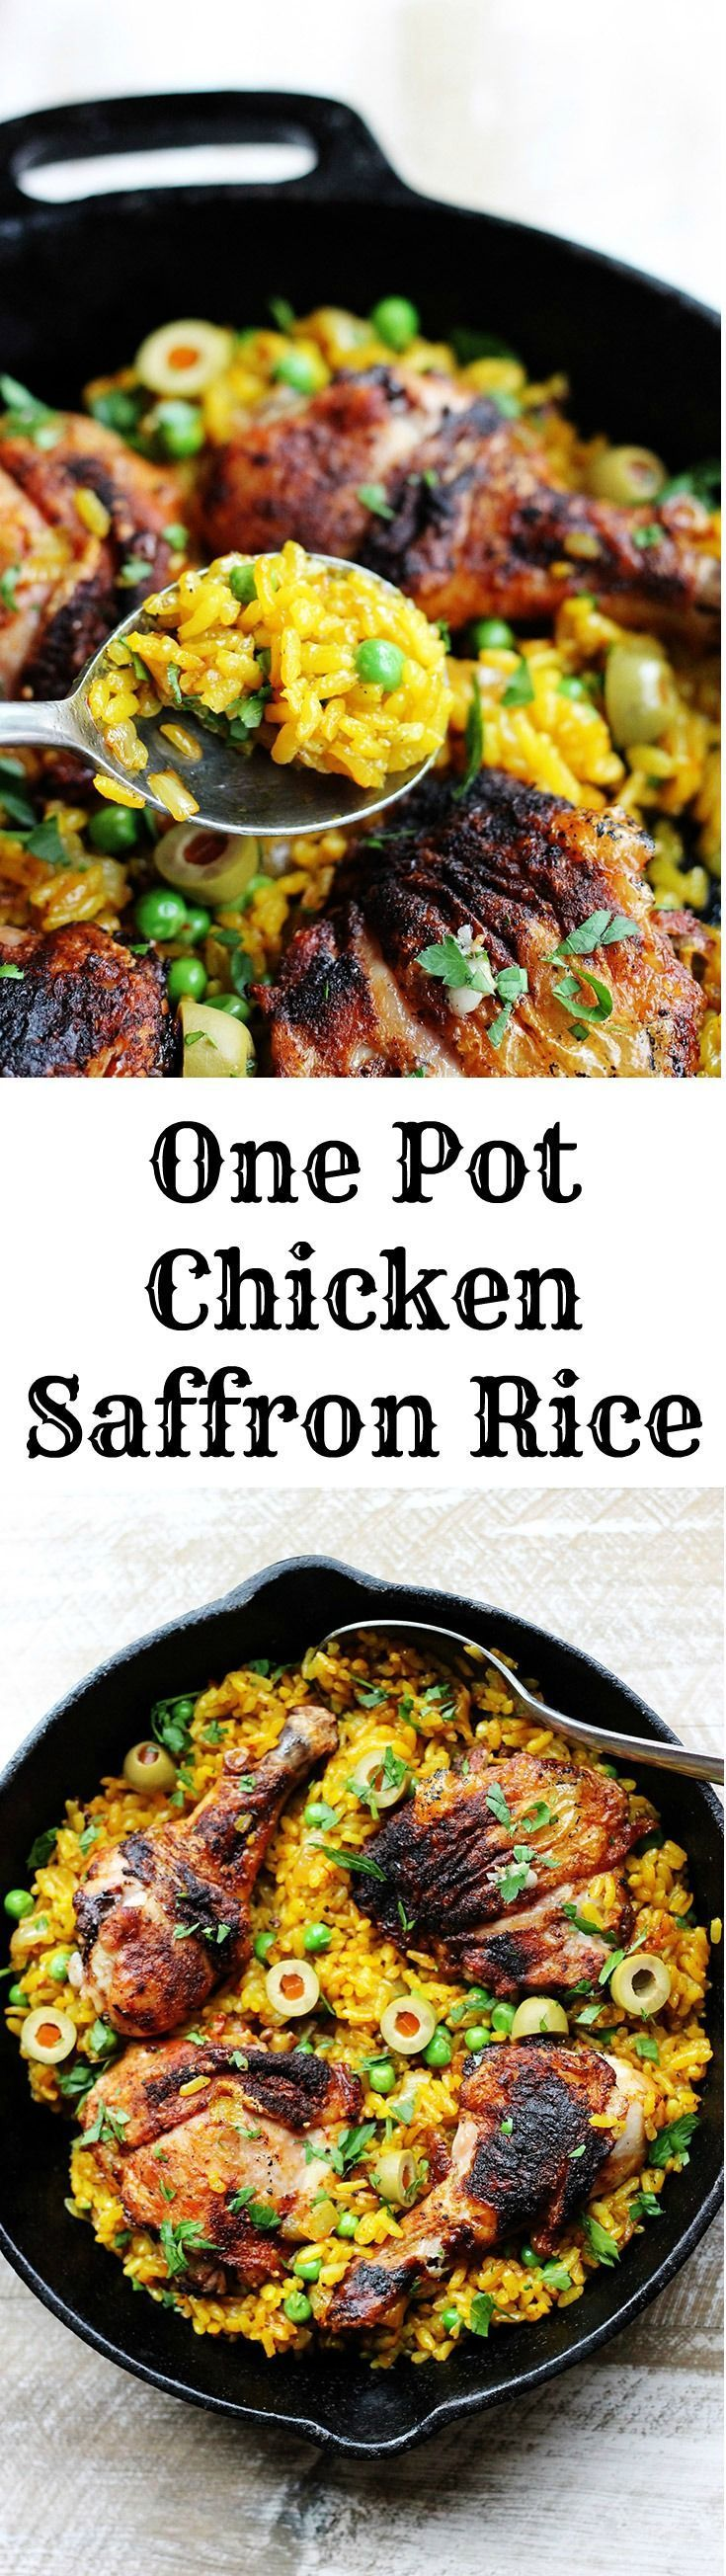 ONE POT CHICKEN SAFFRON RICE WITH PEAS, OLIVES AND PIMENTON IS AN EASY WEEKNIGHT MEAL THAT REQUIRES MINIMAL WORK. THE OVEN DOES THE JOB FOR YOU.